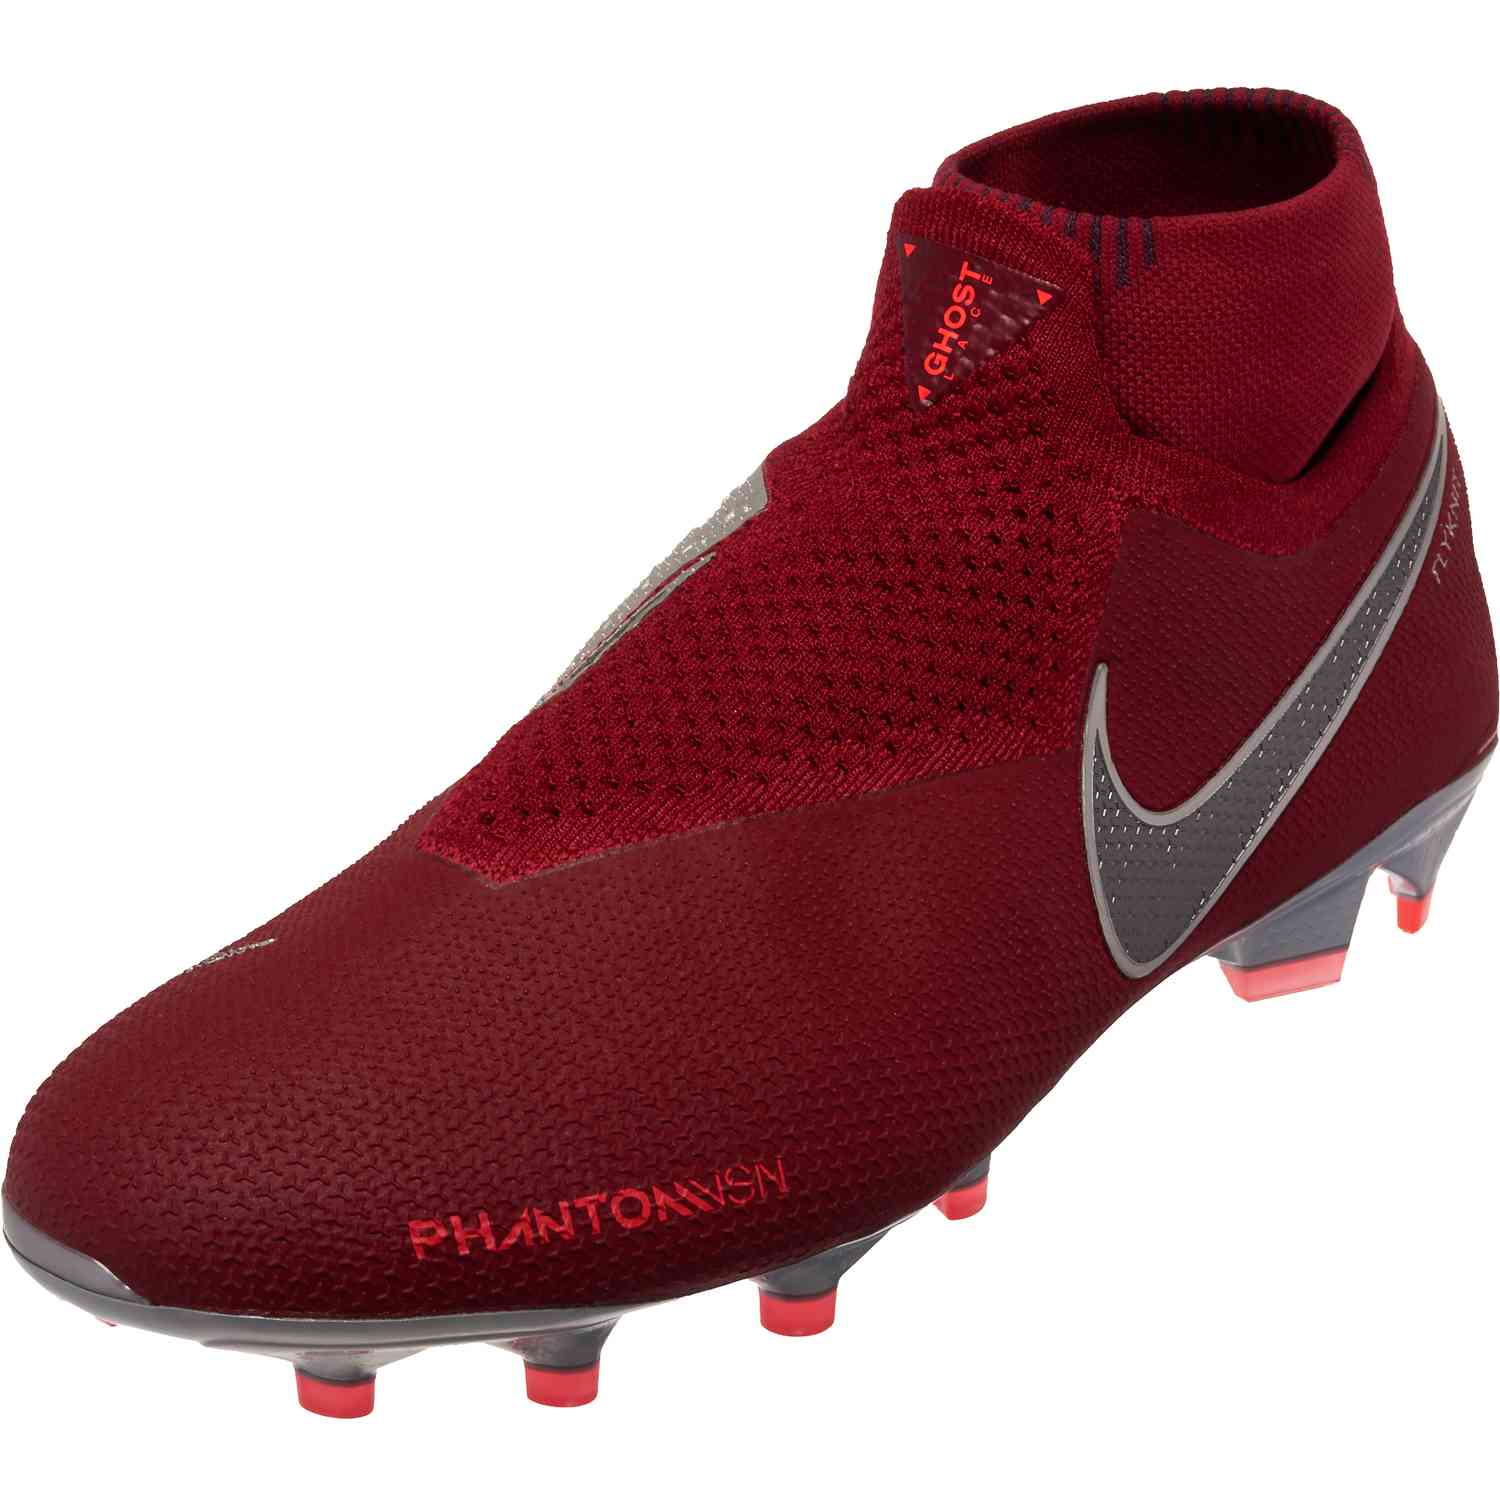 Nike Phantom Vision Elite FG – Team RedMetallic Dark GreyBright Crimson